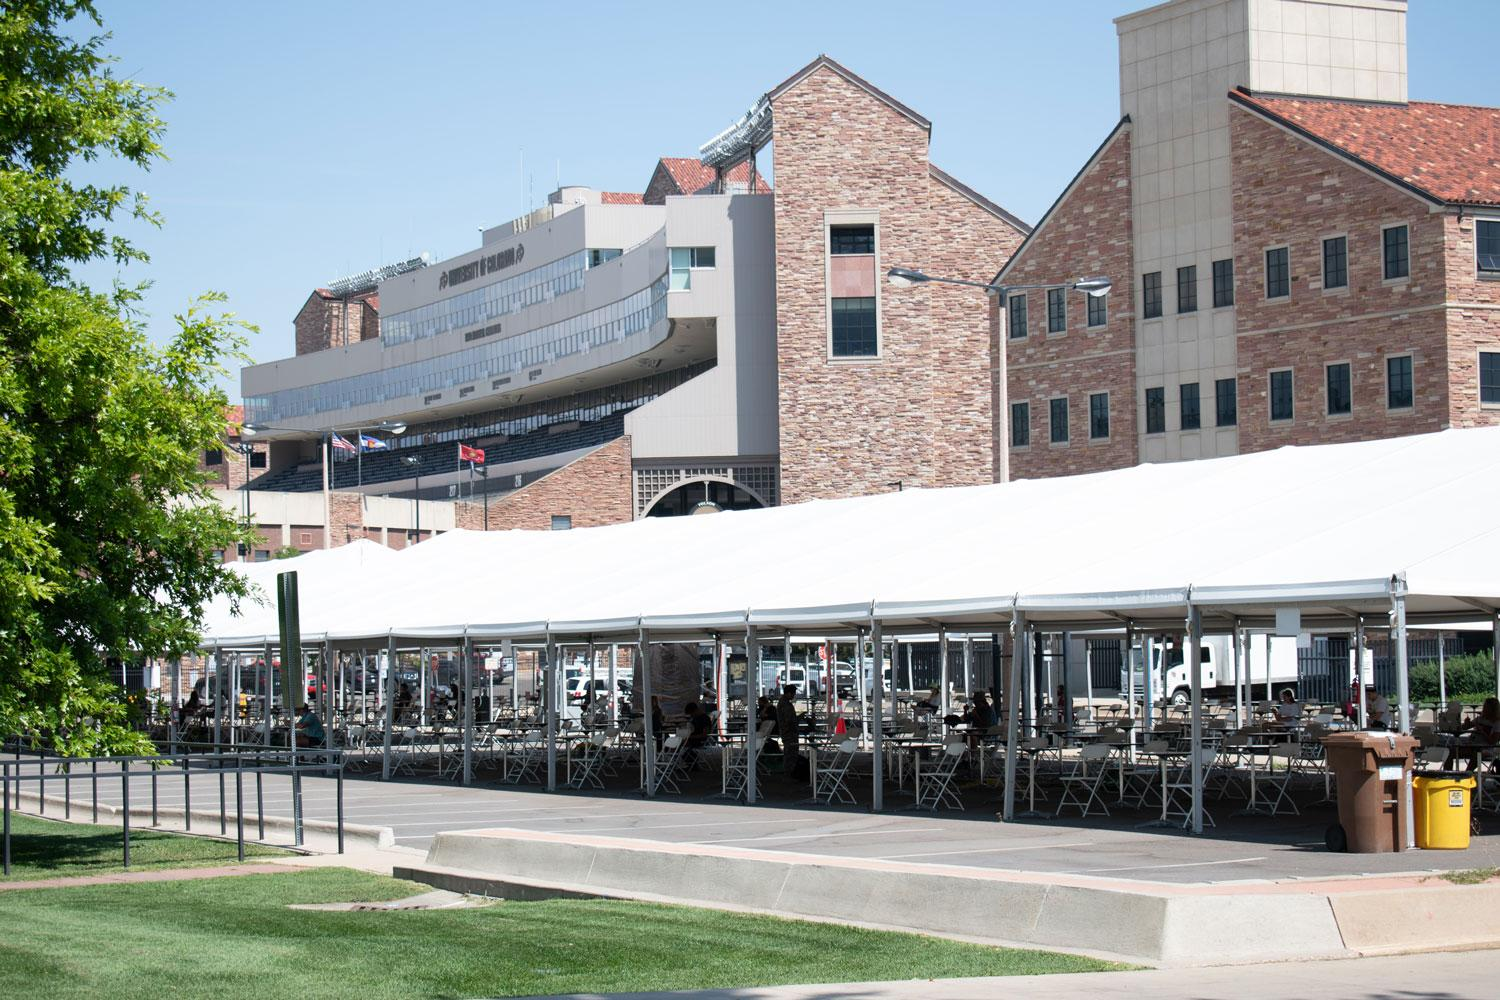 Tent with Folsom Field in the Backgroudn